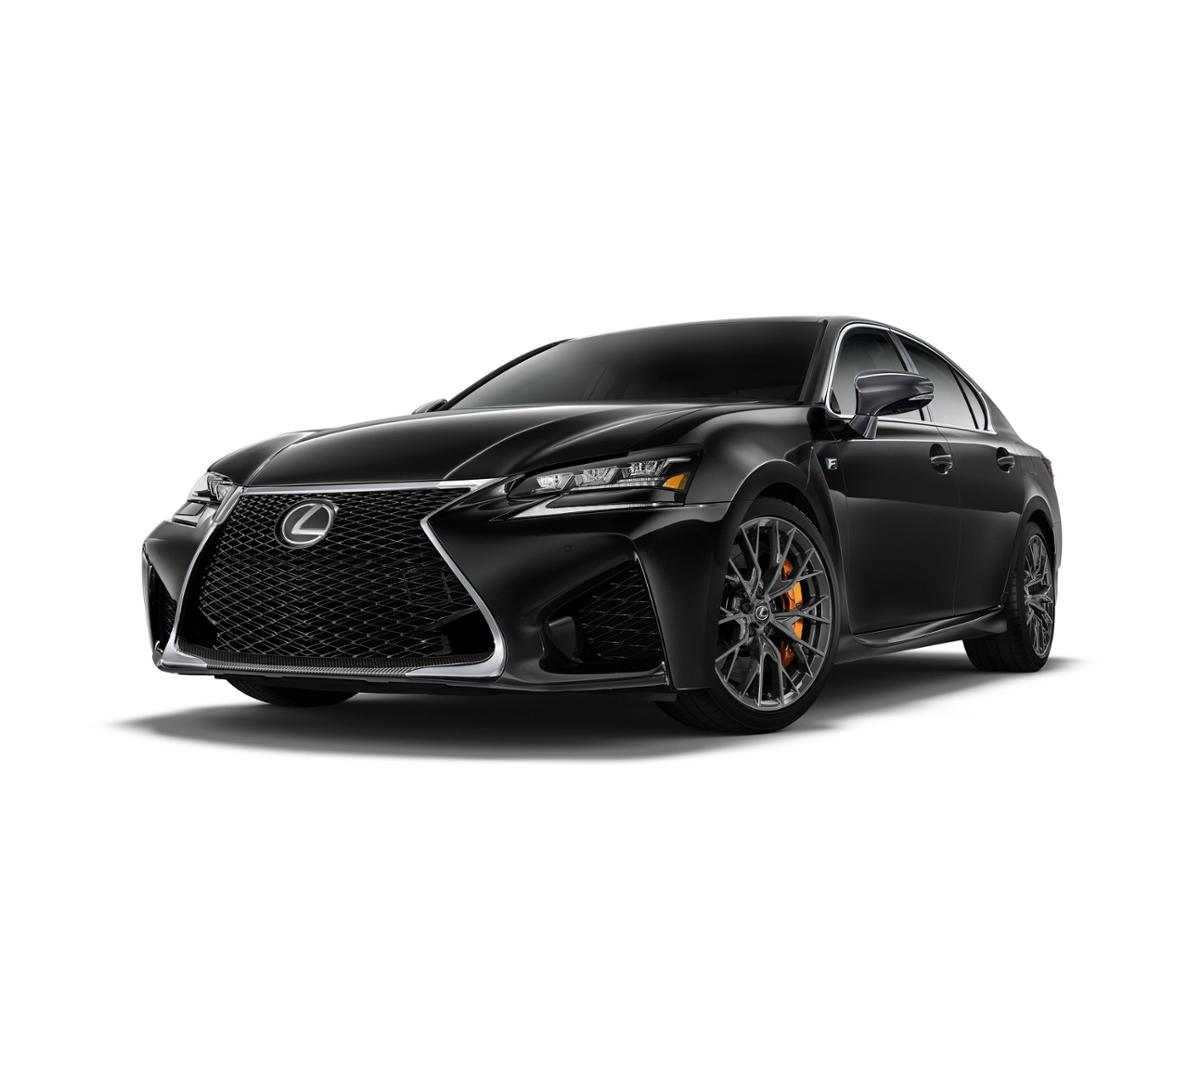 2019 Lexus GS F Vehicle Photo in Houston, TX 77074